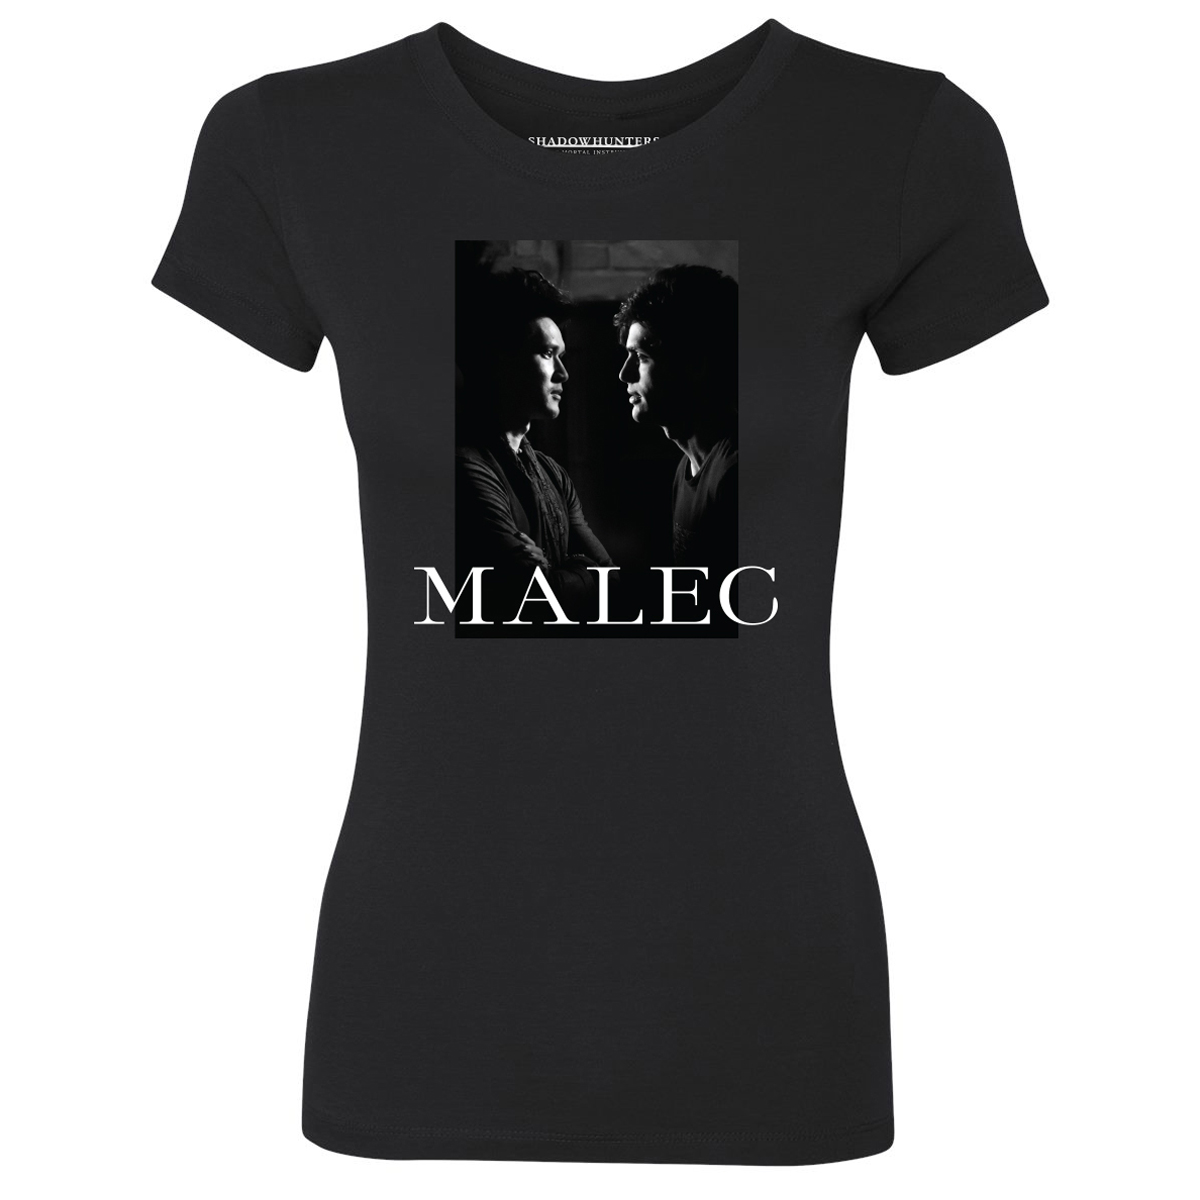 Shadowhunters Malec Women's T-Shirt